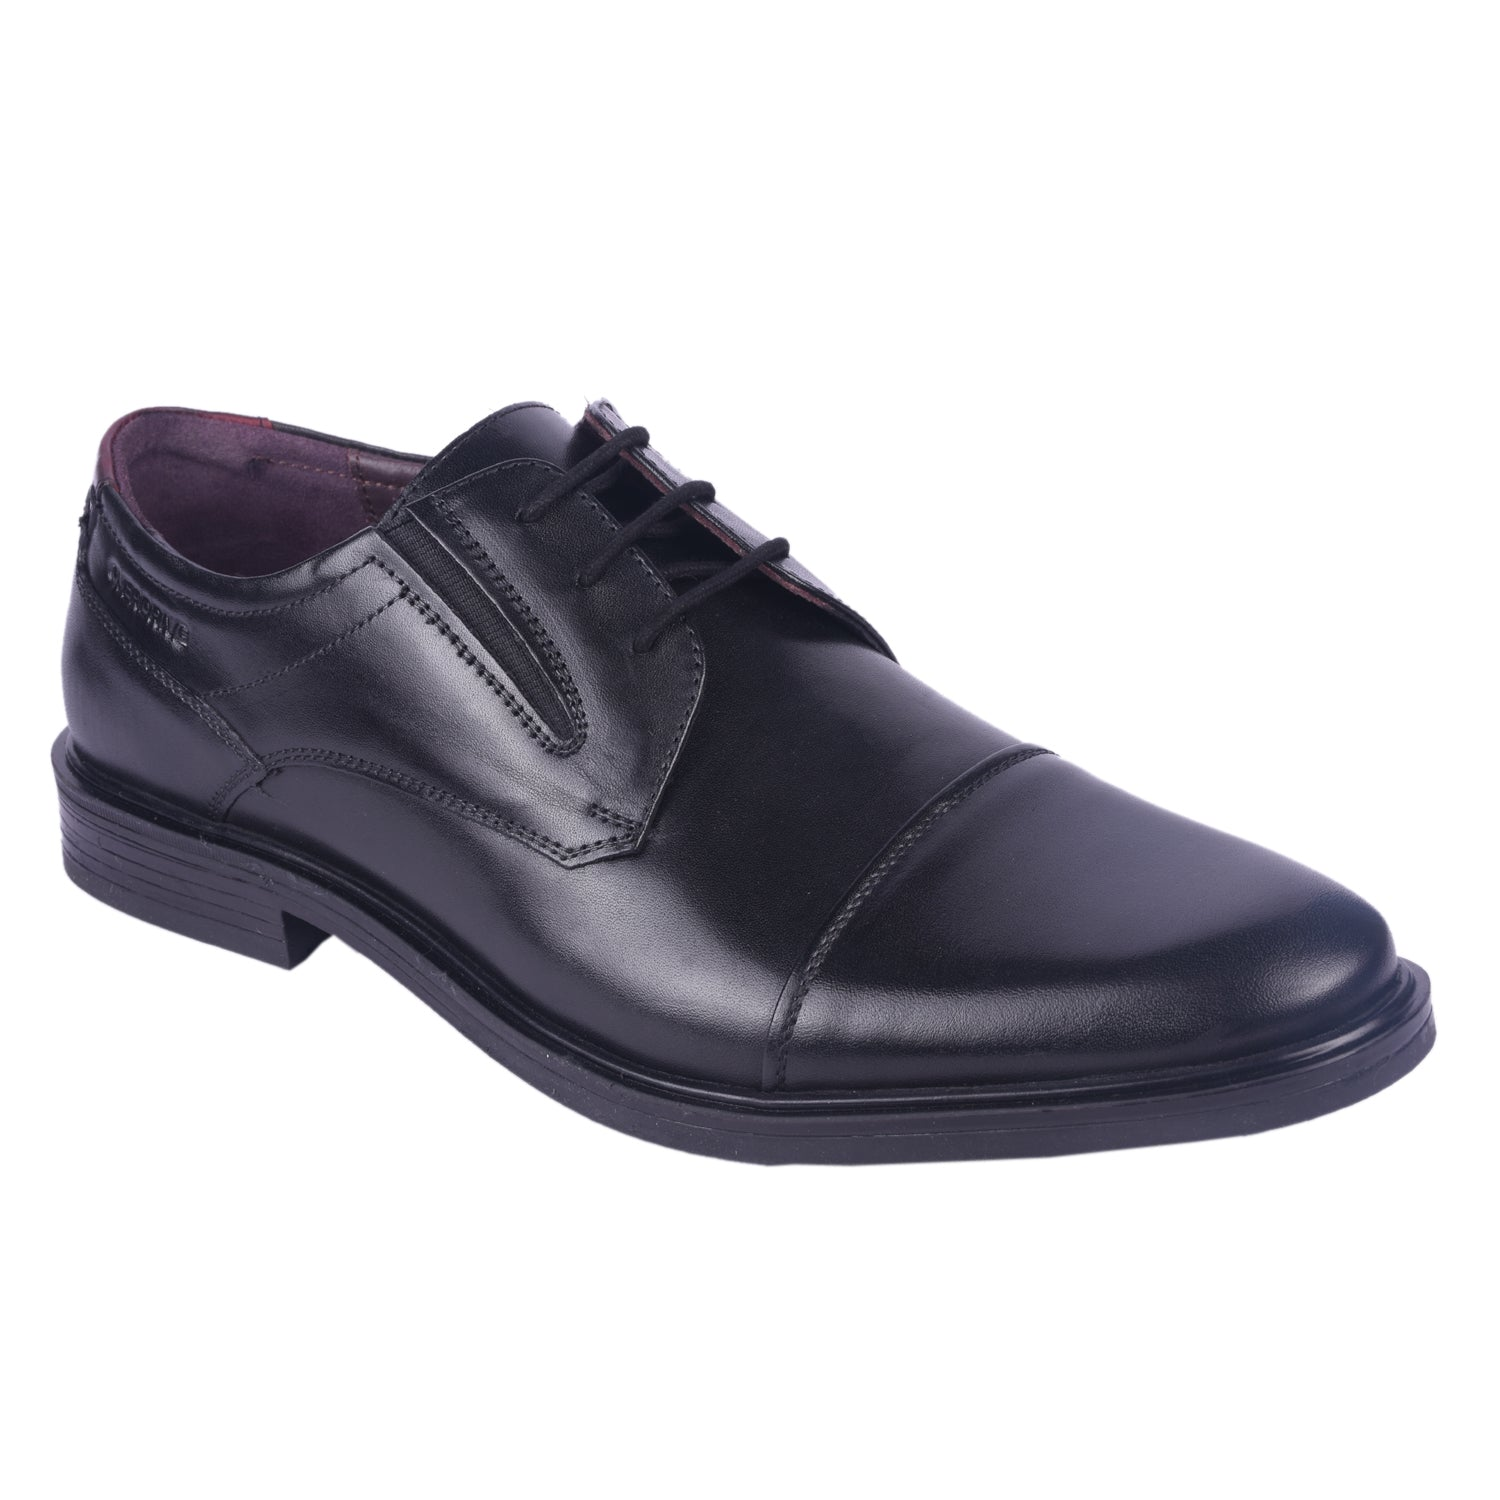 Up in the Air Black Lace Up Formal Shoe